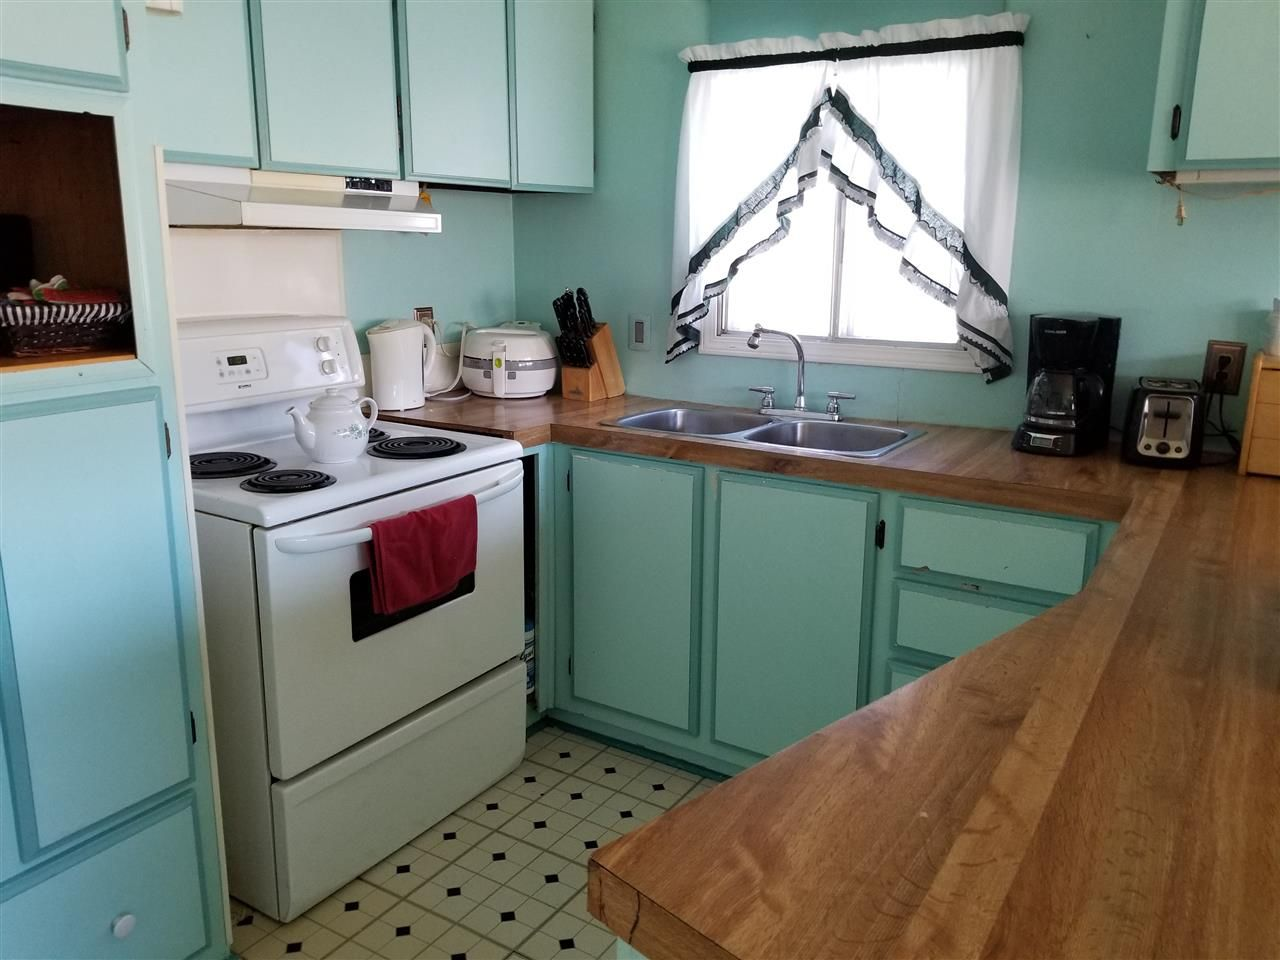 Photo 8: Photos: 9 1265 SOUTH LAKESIDE Drive in Williams Lake: Williams Lake - City Manufactured Home for sale (Williams Lake (Zone 27))  : MLS®# R2414421